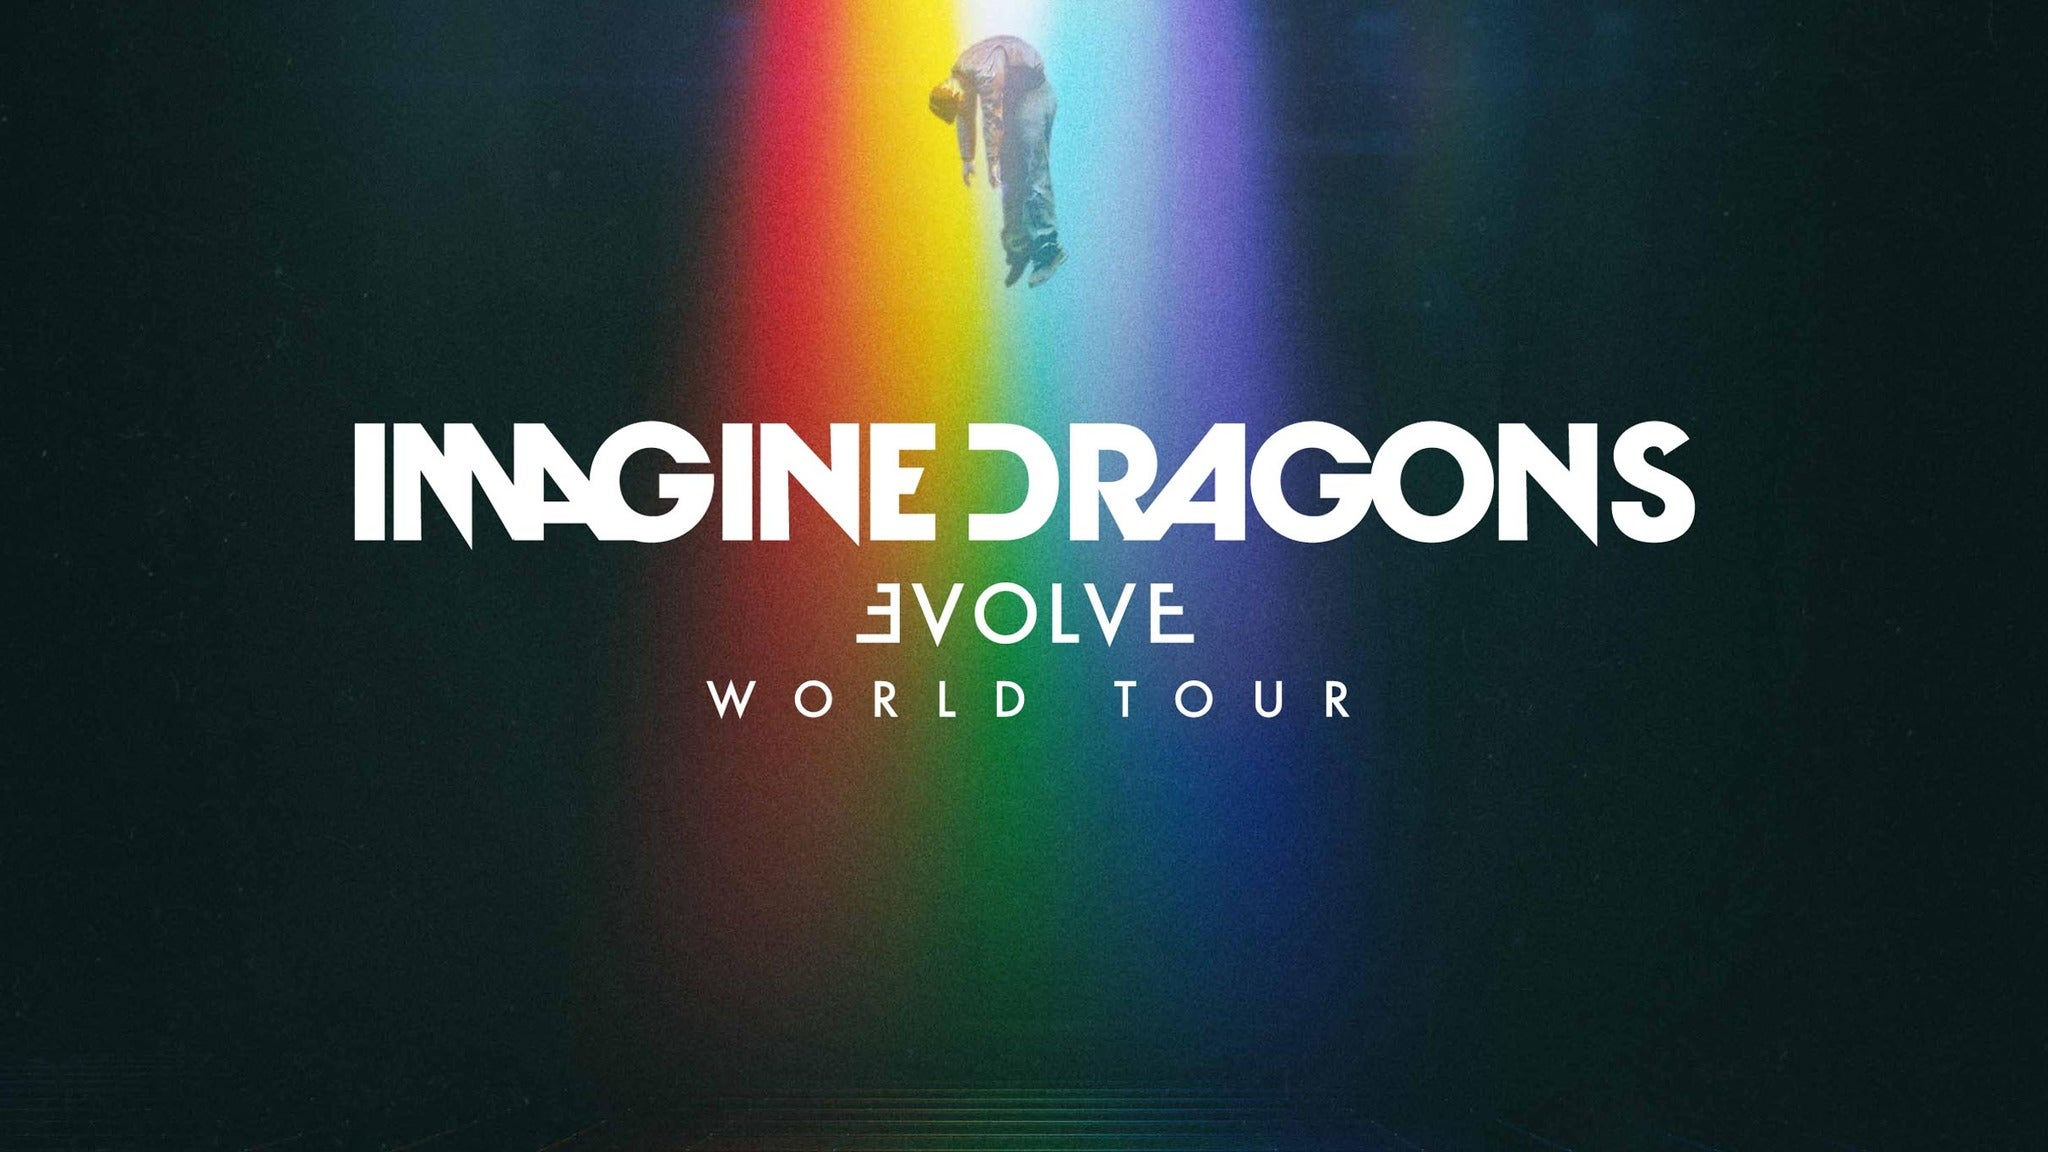 Imagine Dragons: EVOLVE TOUR at DTE Energy Music Theatre